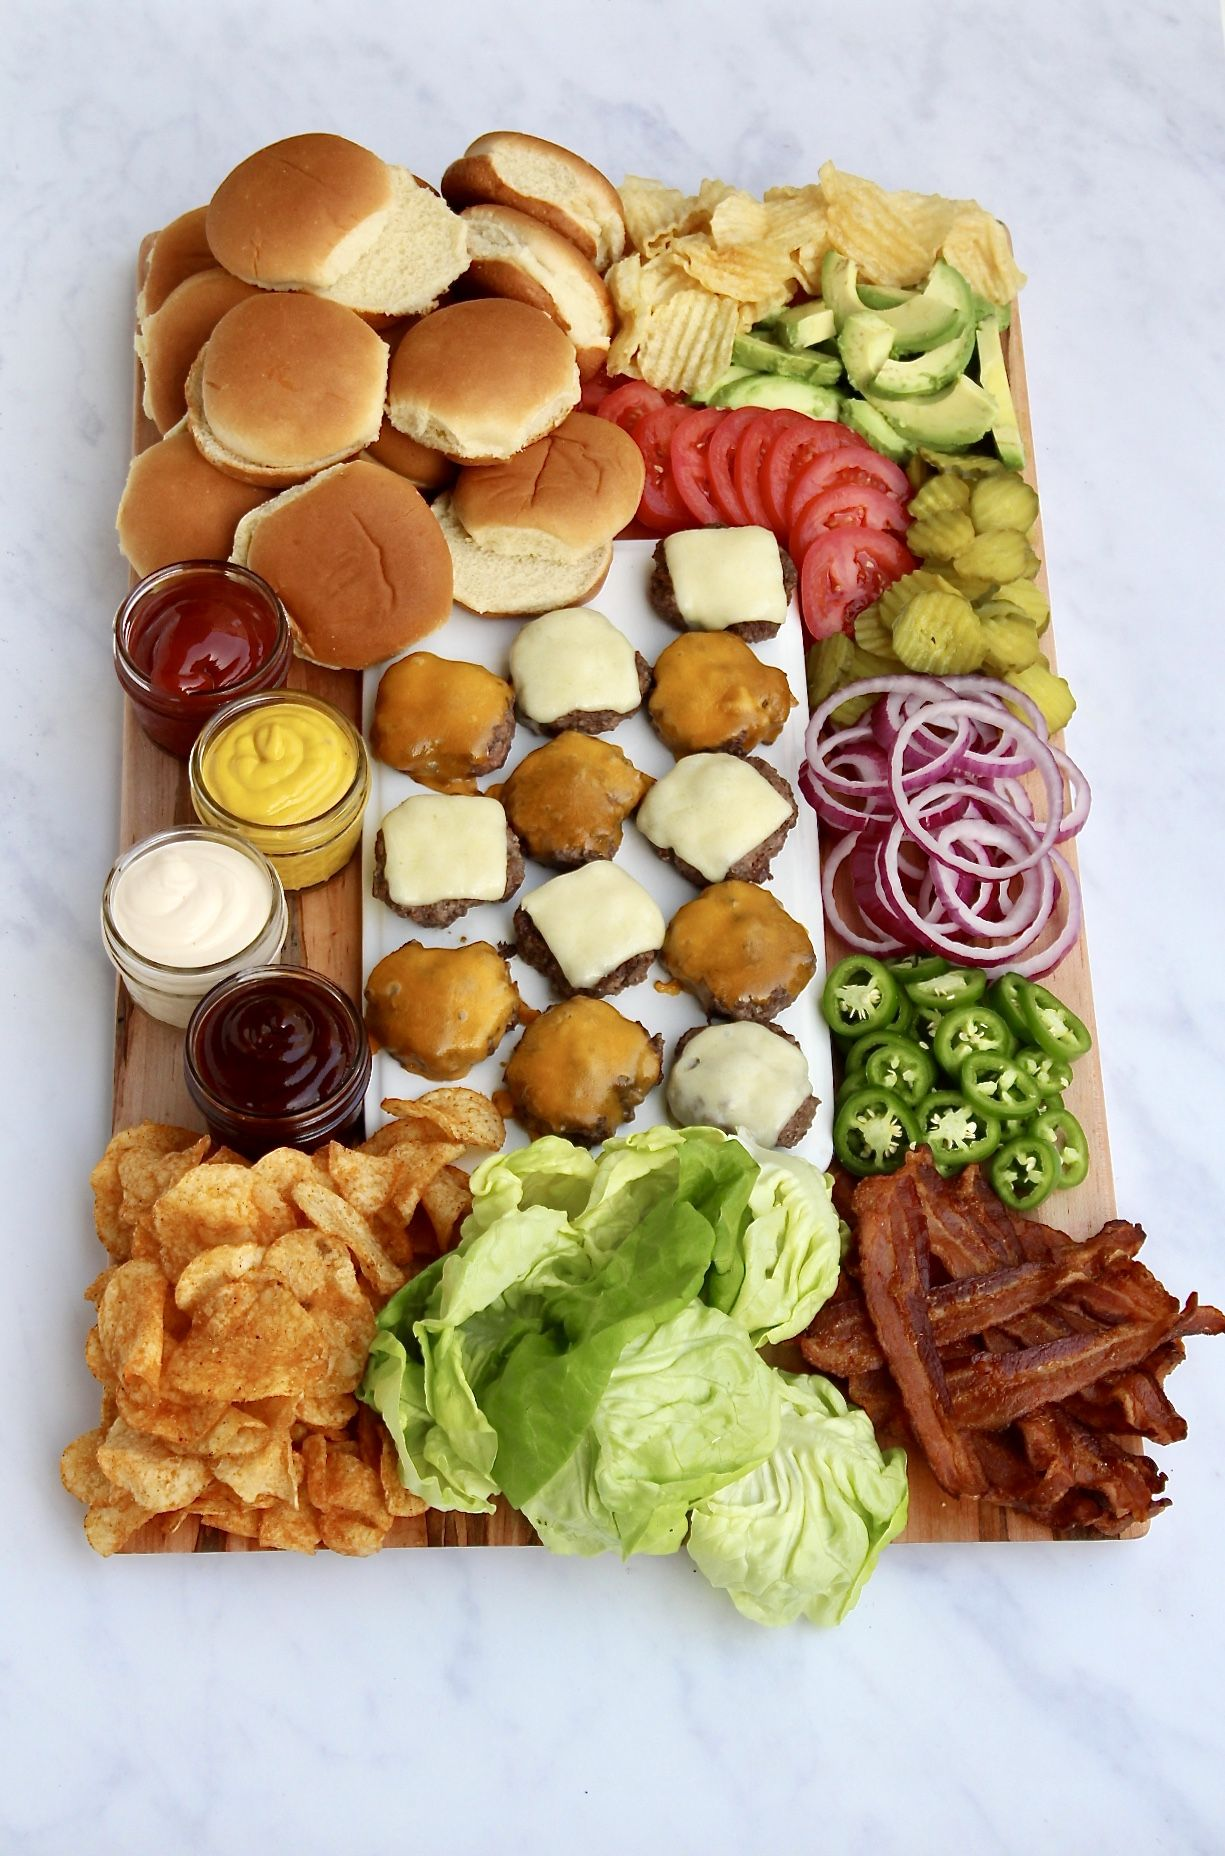 Build-Your-Own Burger Board | The BakerMama